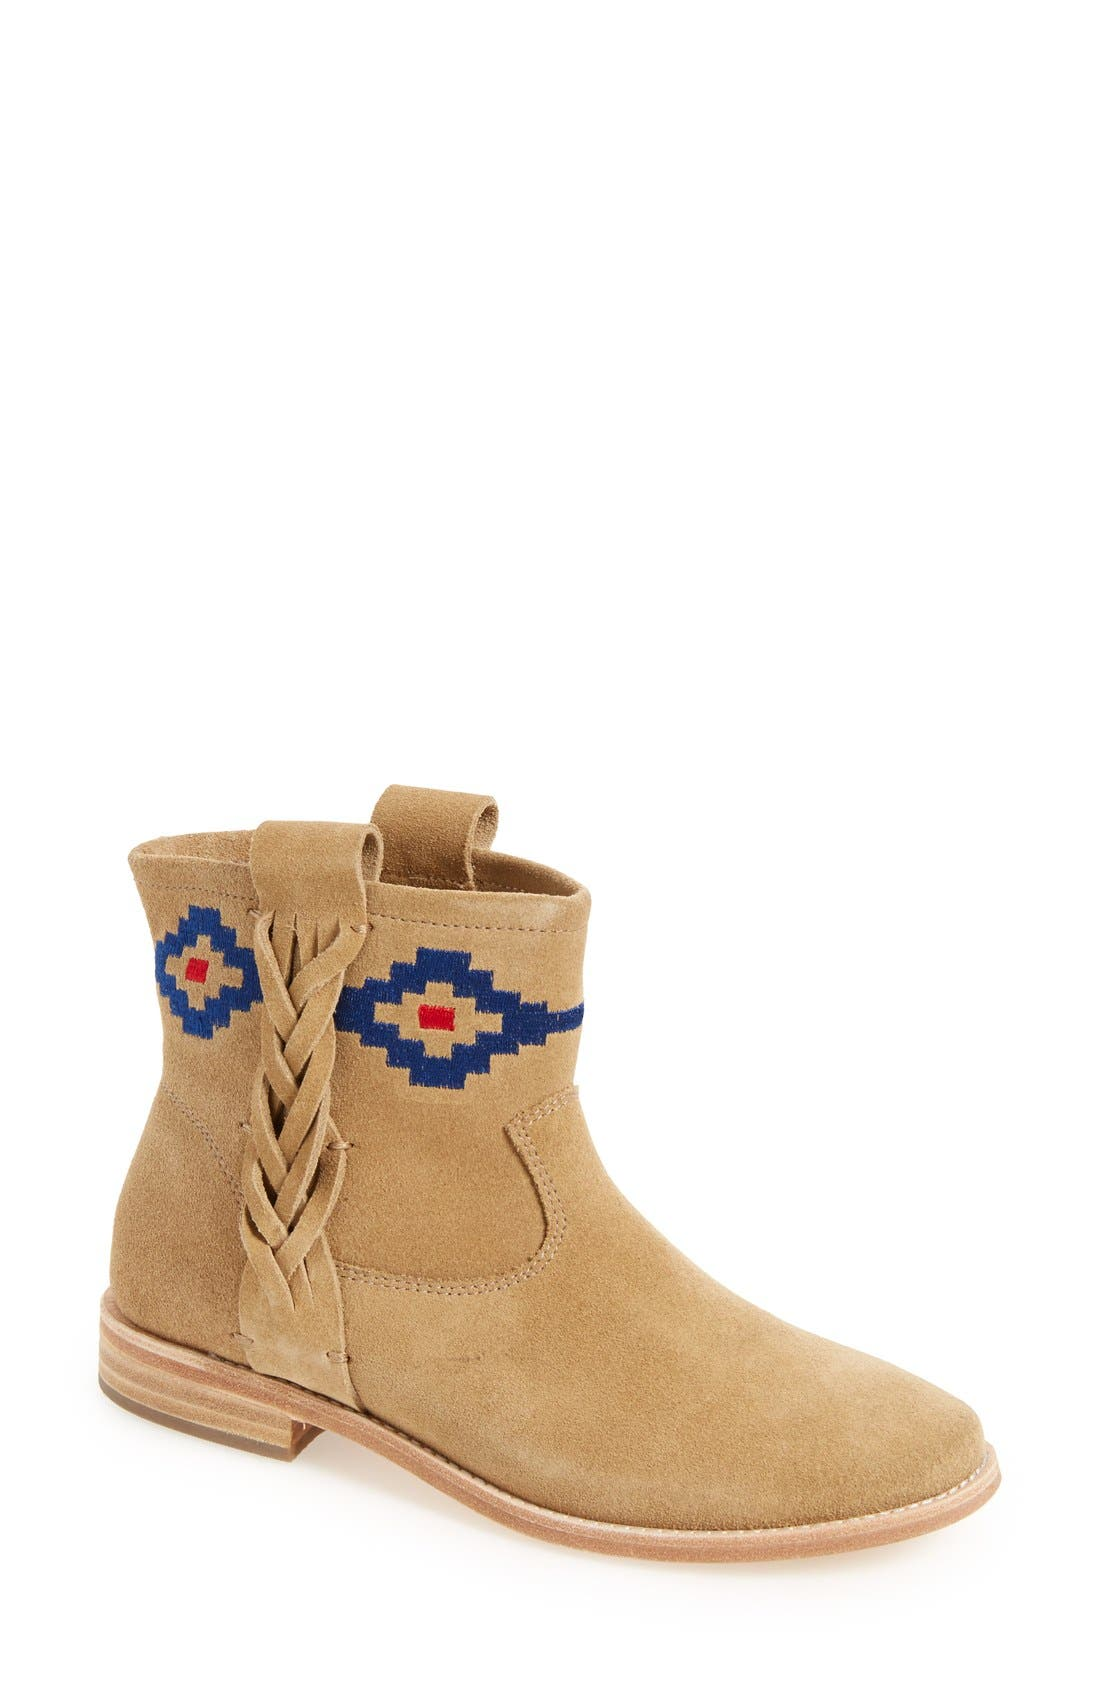 Main Image - Soludos Embroidered Bootie (Women)